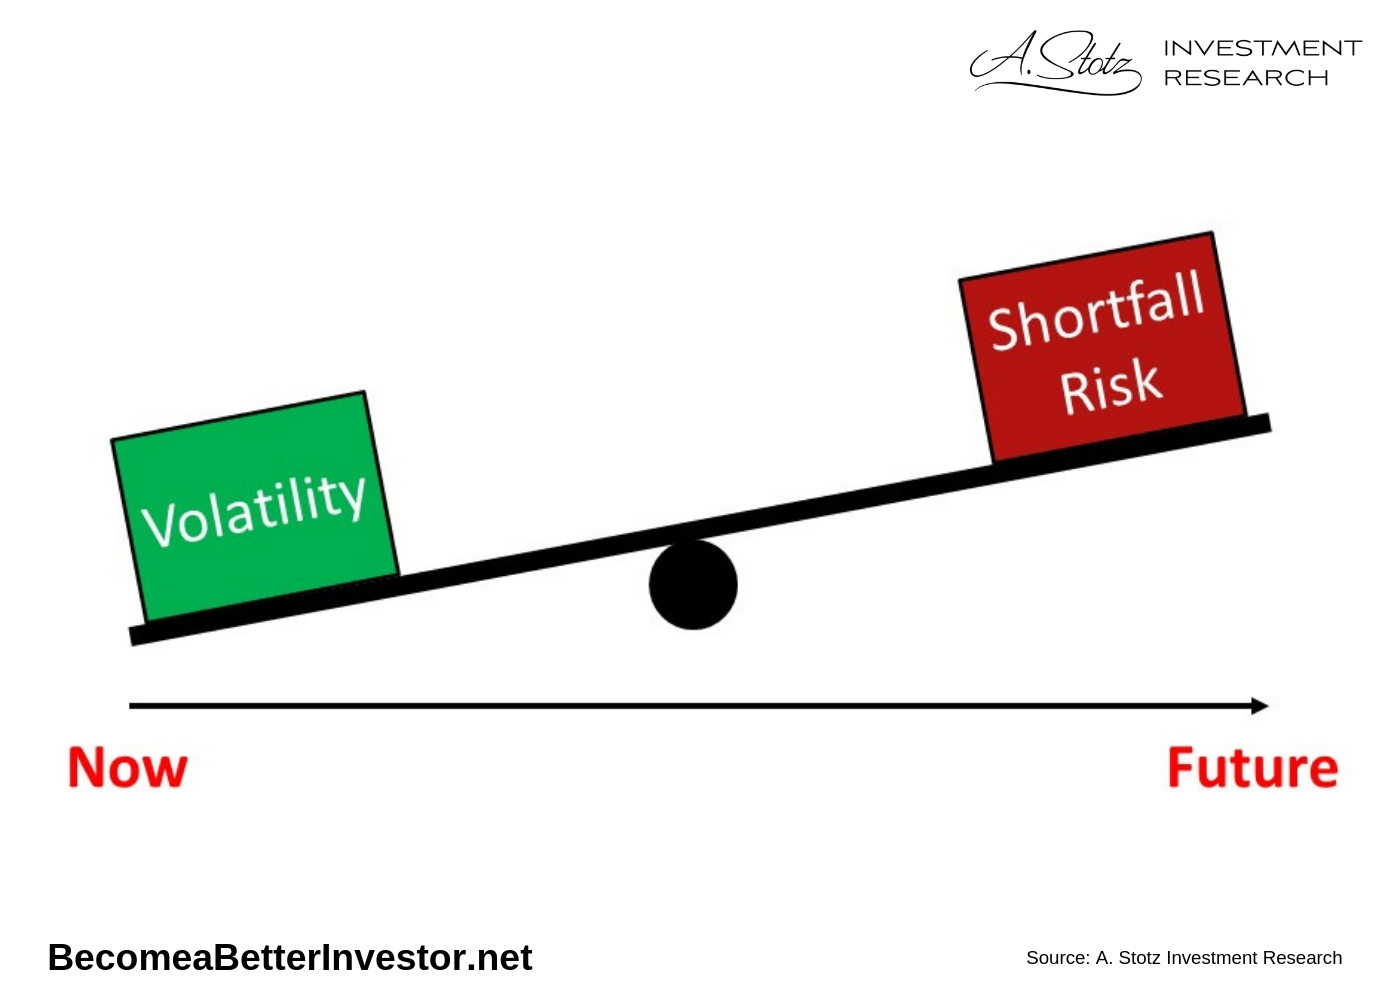 Low volatility today, means higher shortfall risk in the future